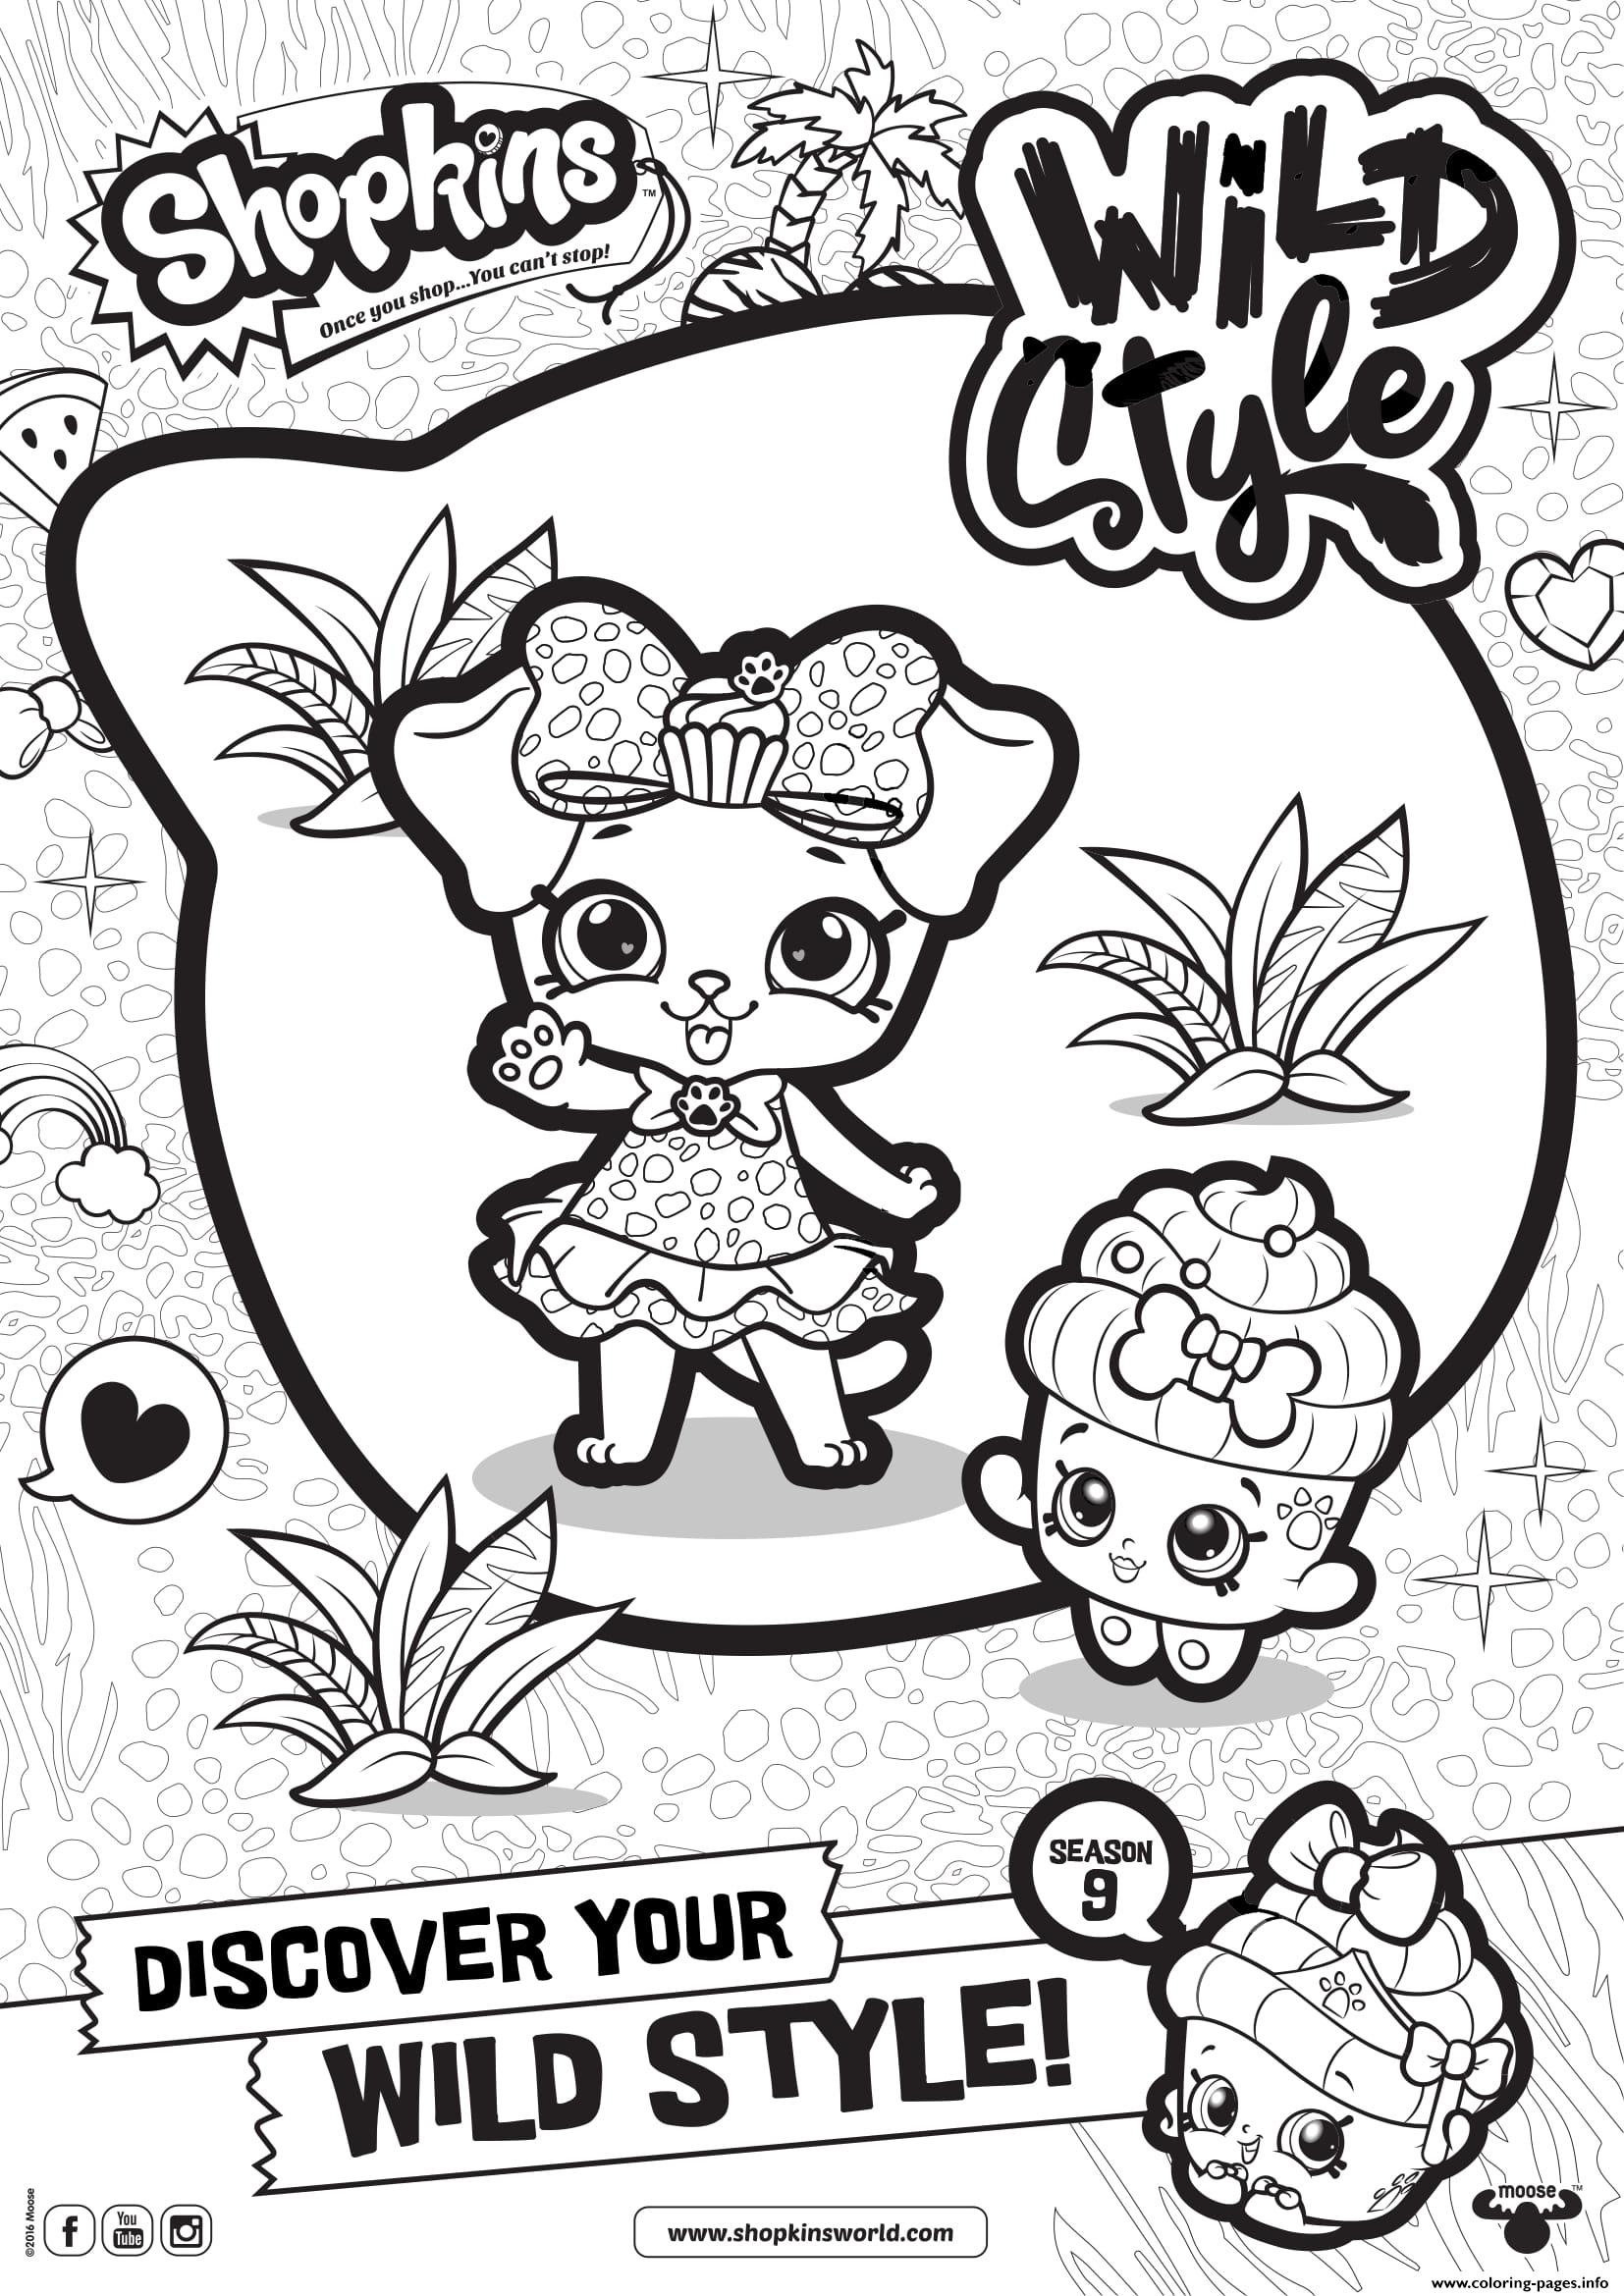 Shopkins Season 9 Wild Style 2 Coloring Pages Printable